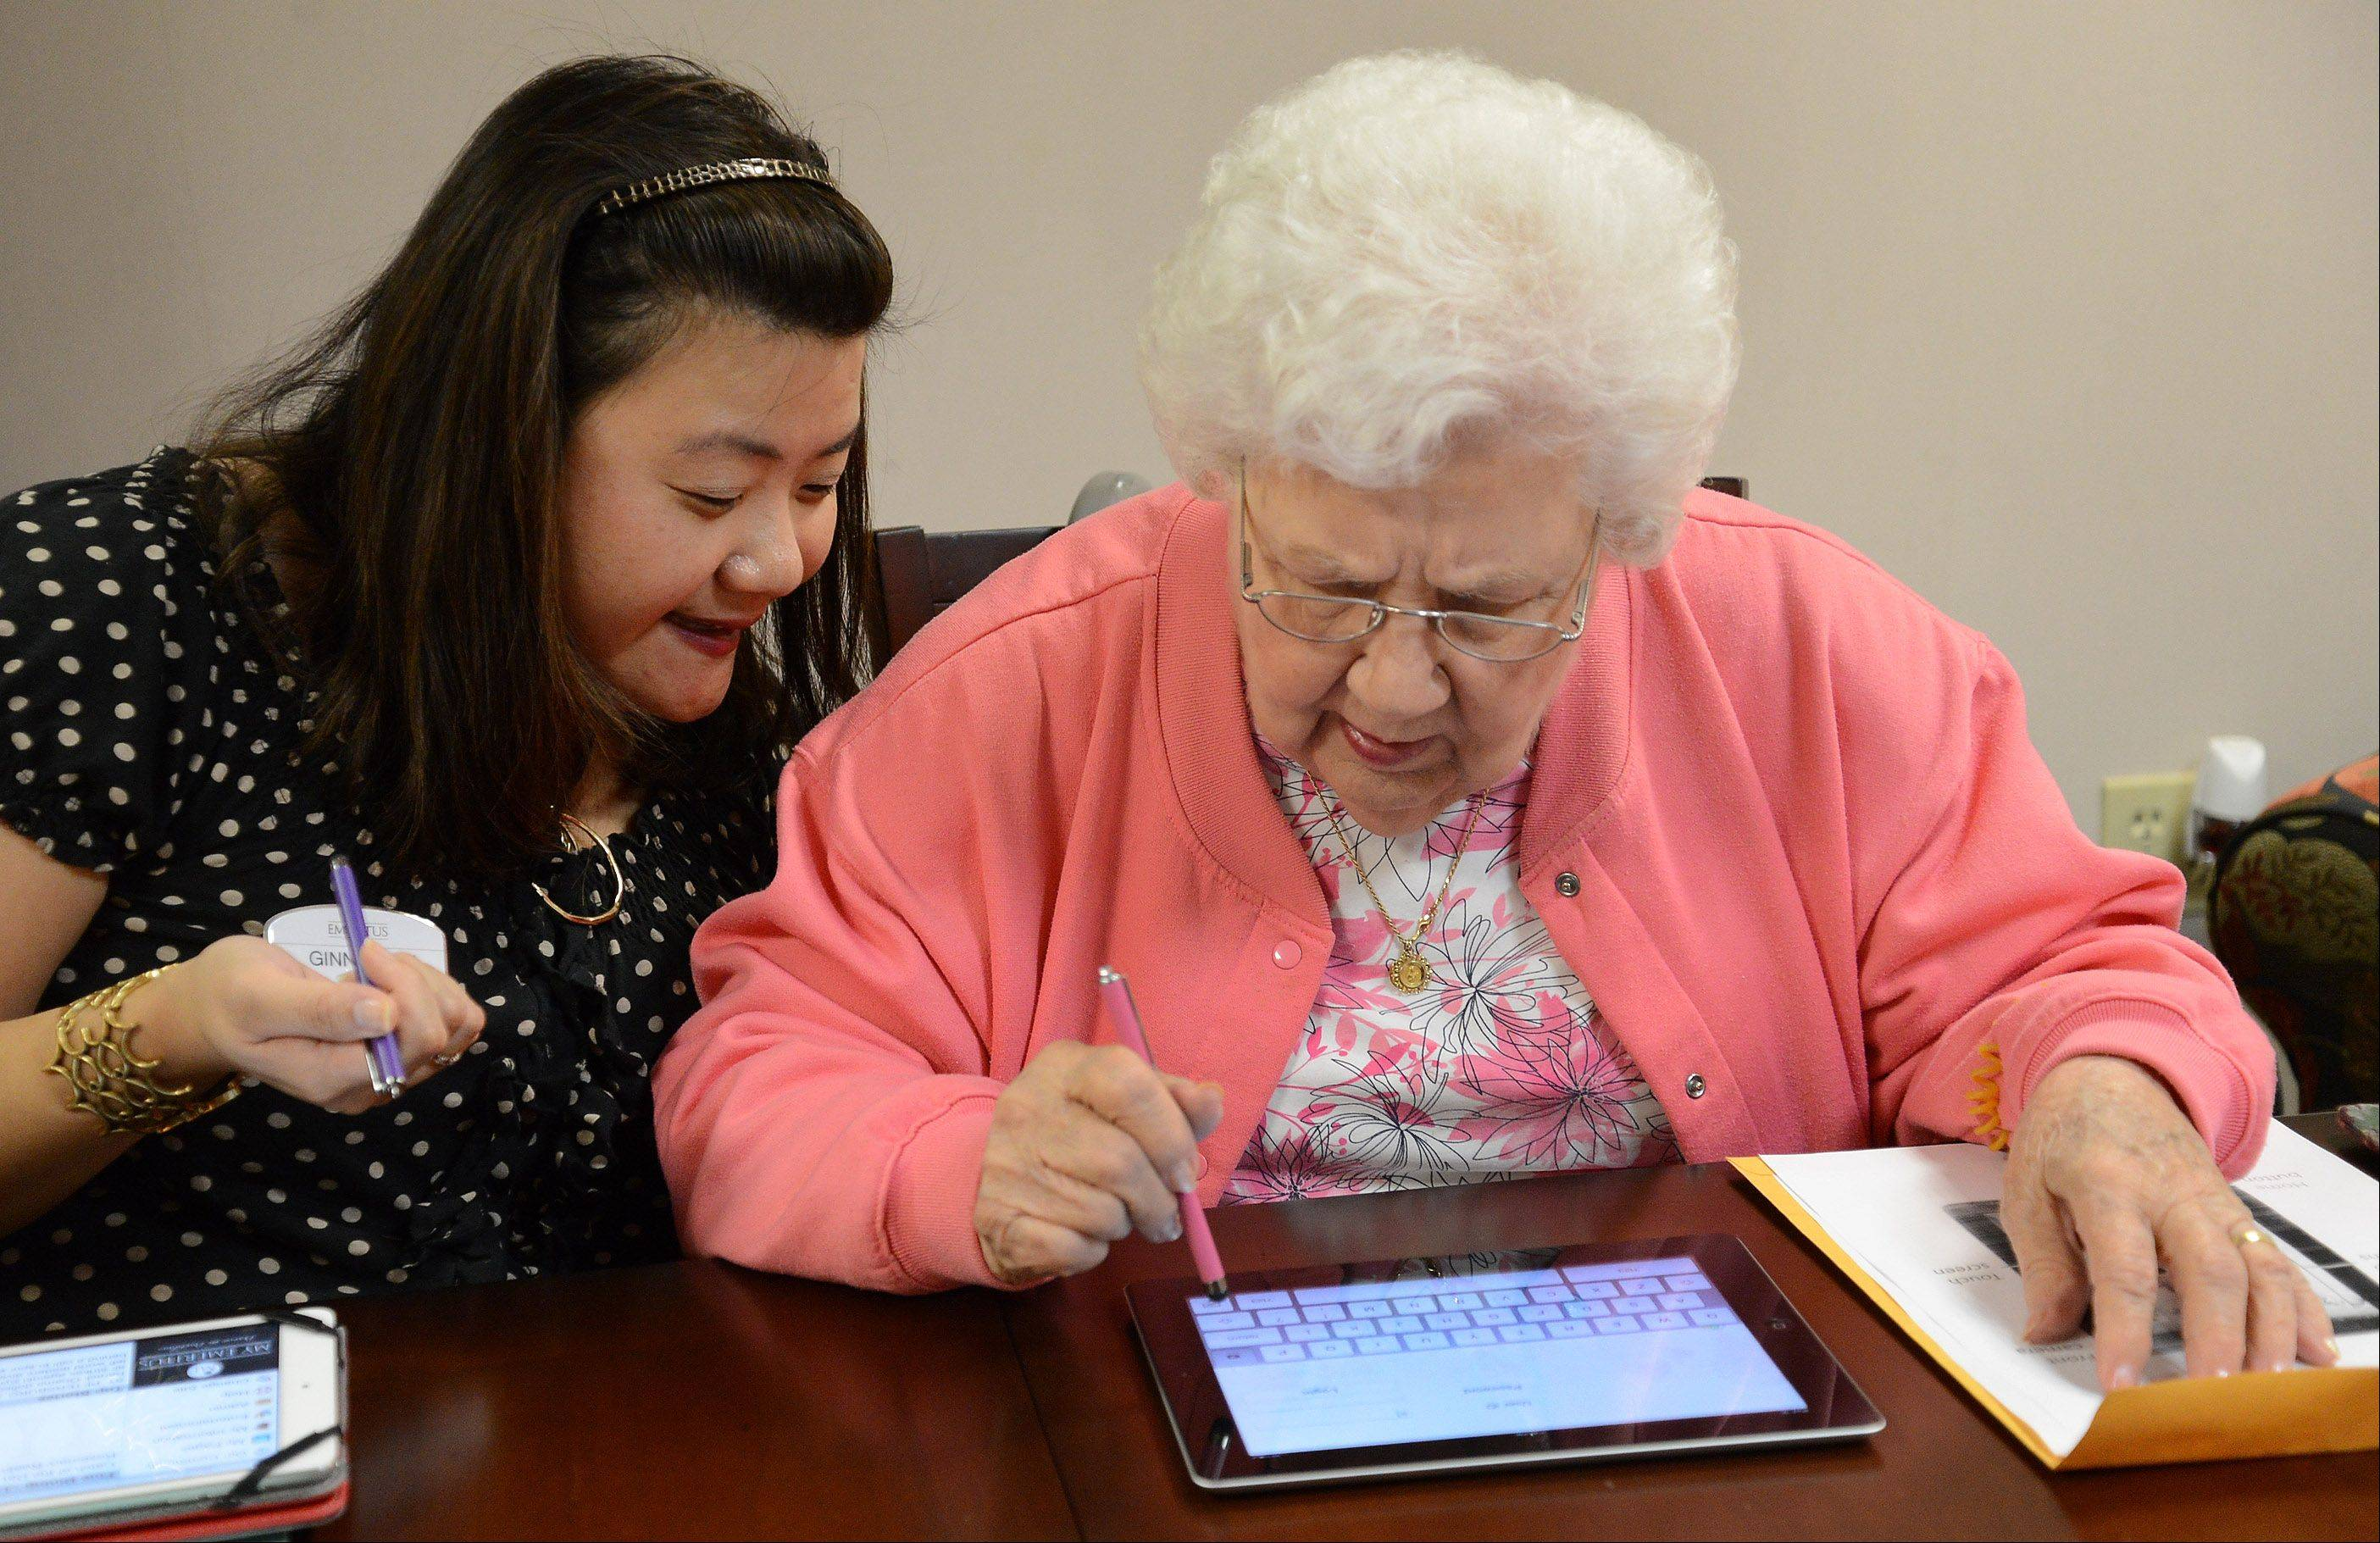 Sending her first email by tapping on a photo, Simone Lucas, right, uses a new iPad app created especially for the residents at Emeritus Senior Living. The new app will make seniors at the Hoffman Estates center more social, says Ginna Baik, left, director of innovation and resident technology.